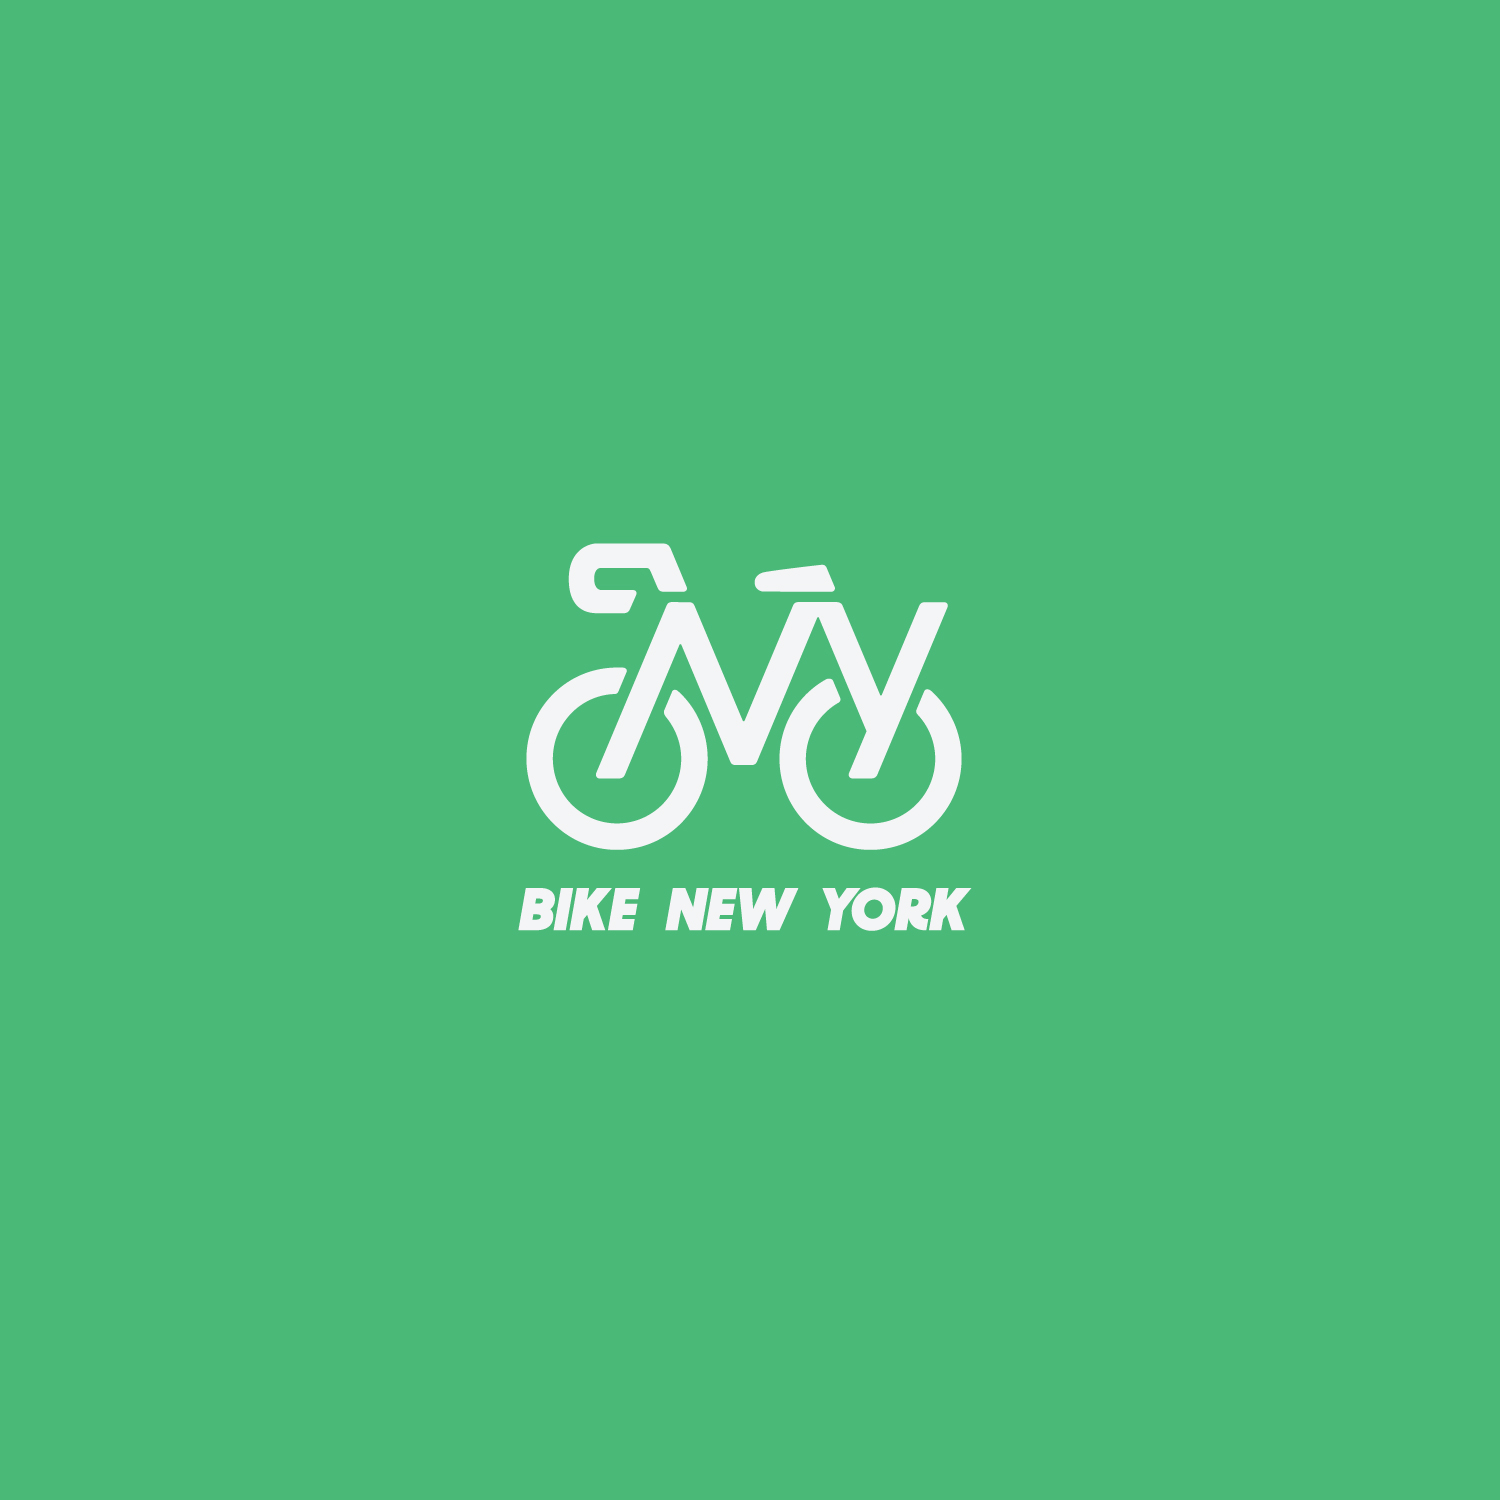 Bike Nyc 2015 Events Bike New York